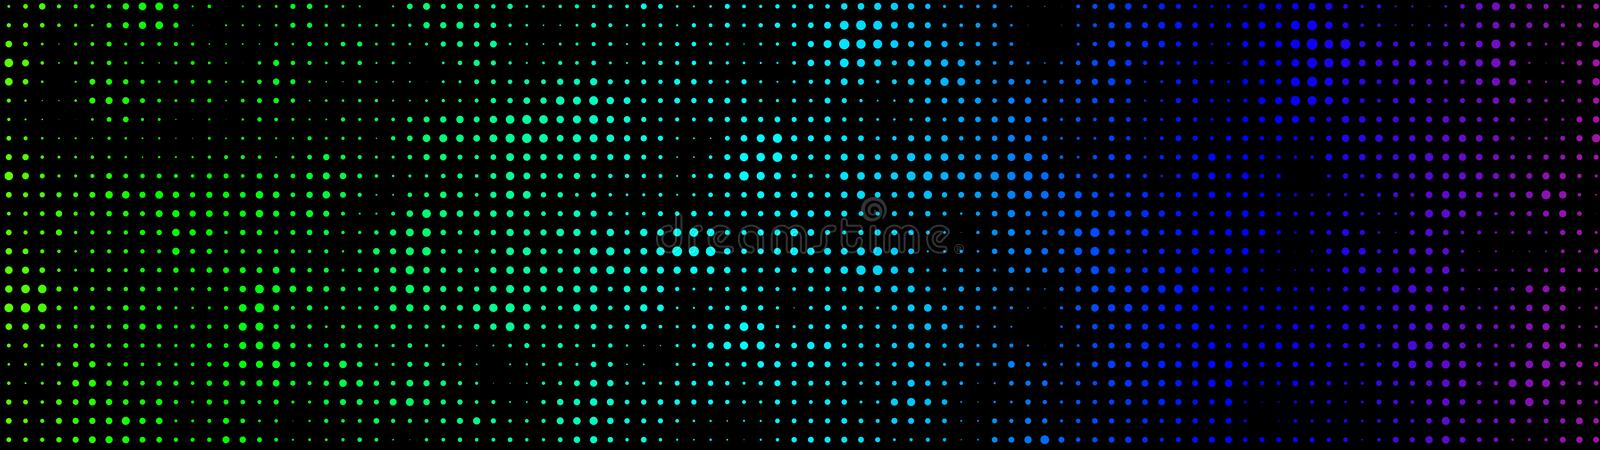 Halftone. Matrix glitch. Cybernetic futuristic background. Big data. Virus. Corrupted code. Vector illustration. Abstract background of black dots. Vector royalty free illustration